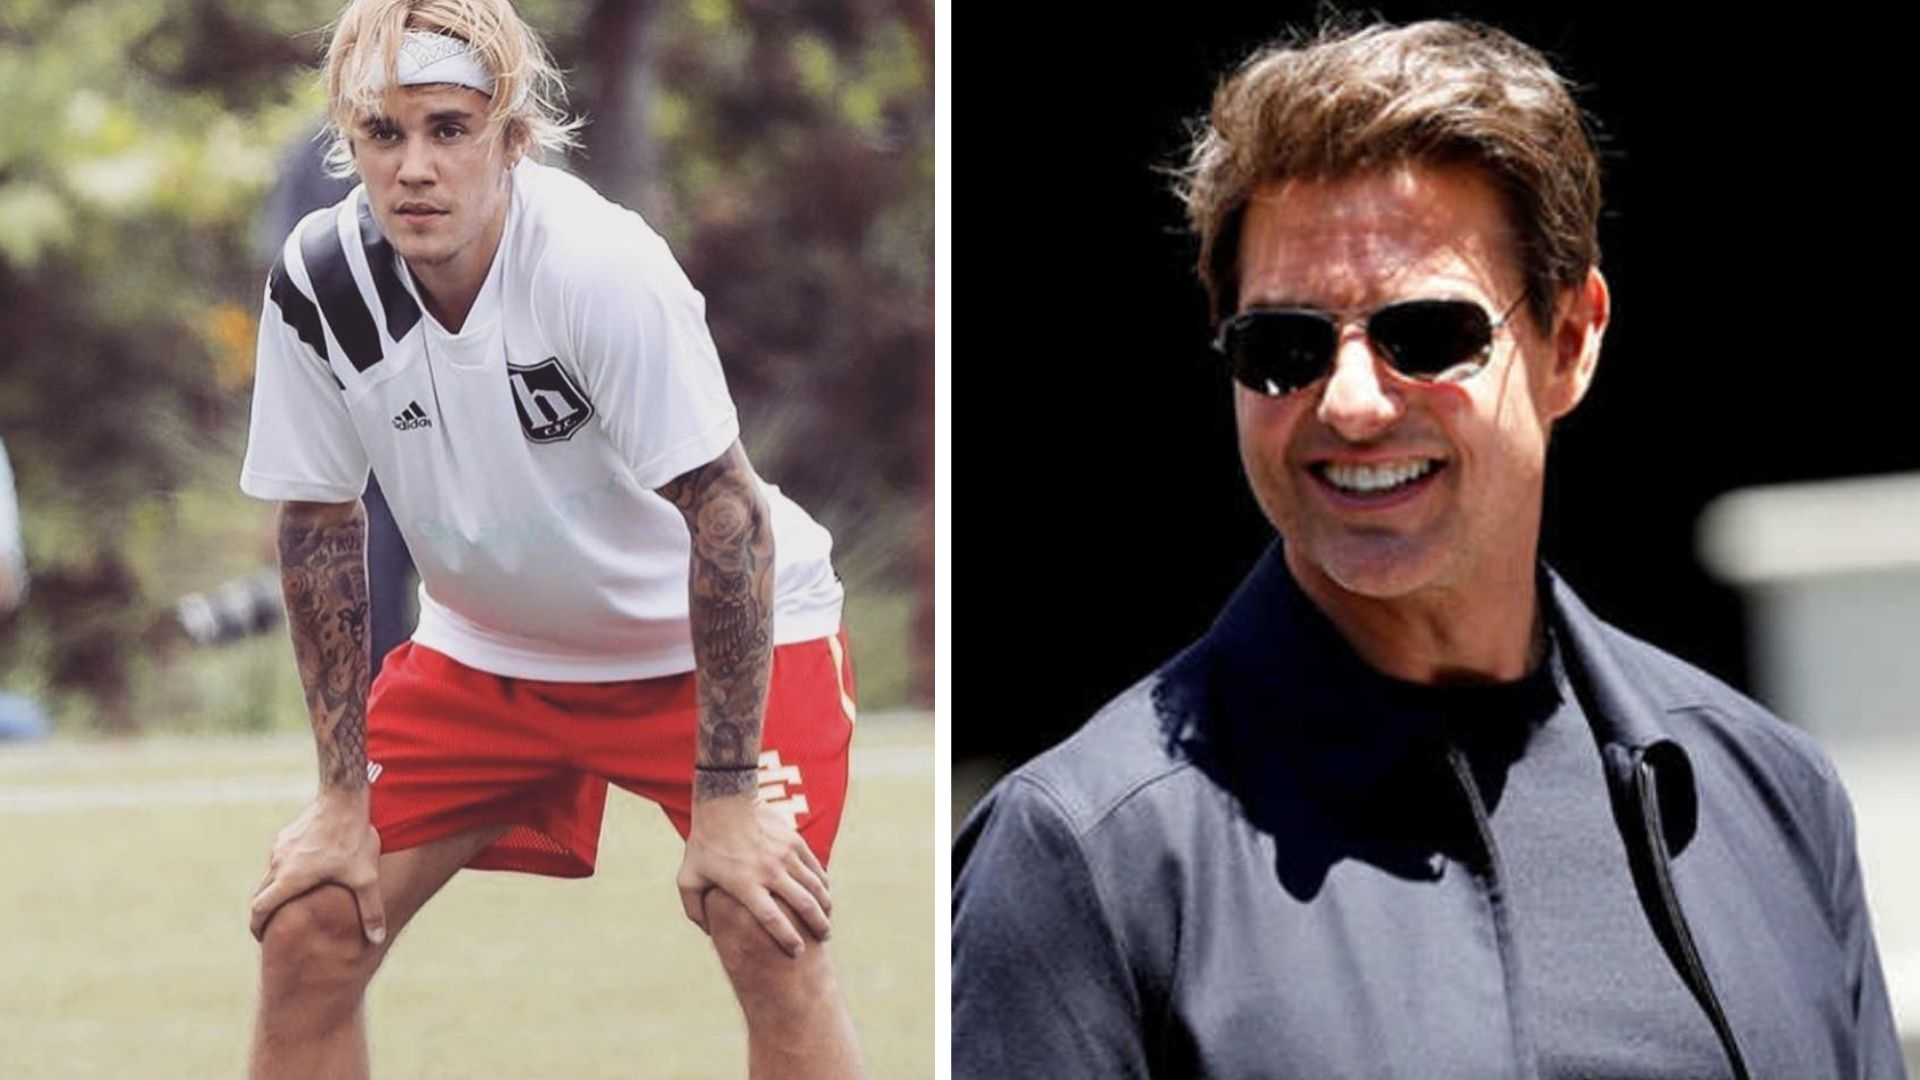 Justin Bieber Challenges Tom Cruise to a Fight, & Guess Who Won!